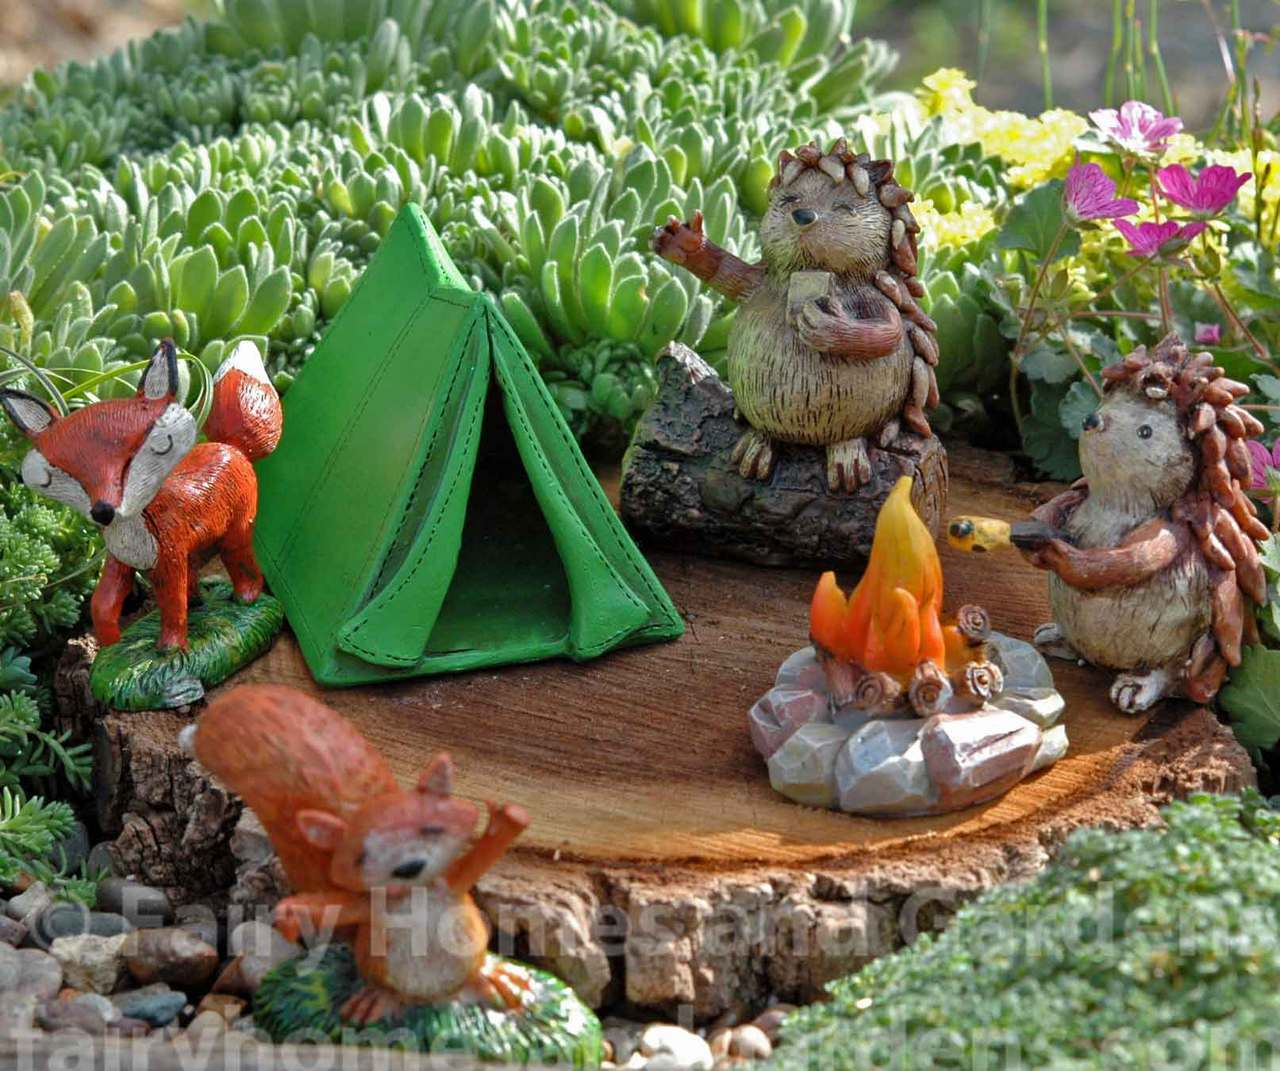 Building a Fairy Garden with Your Kids - Fairy Homes and Gardens